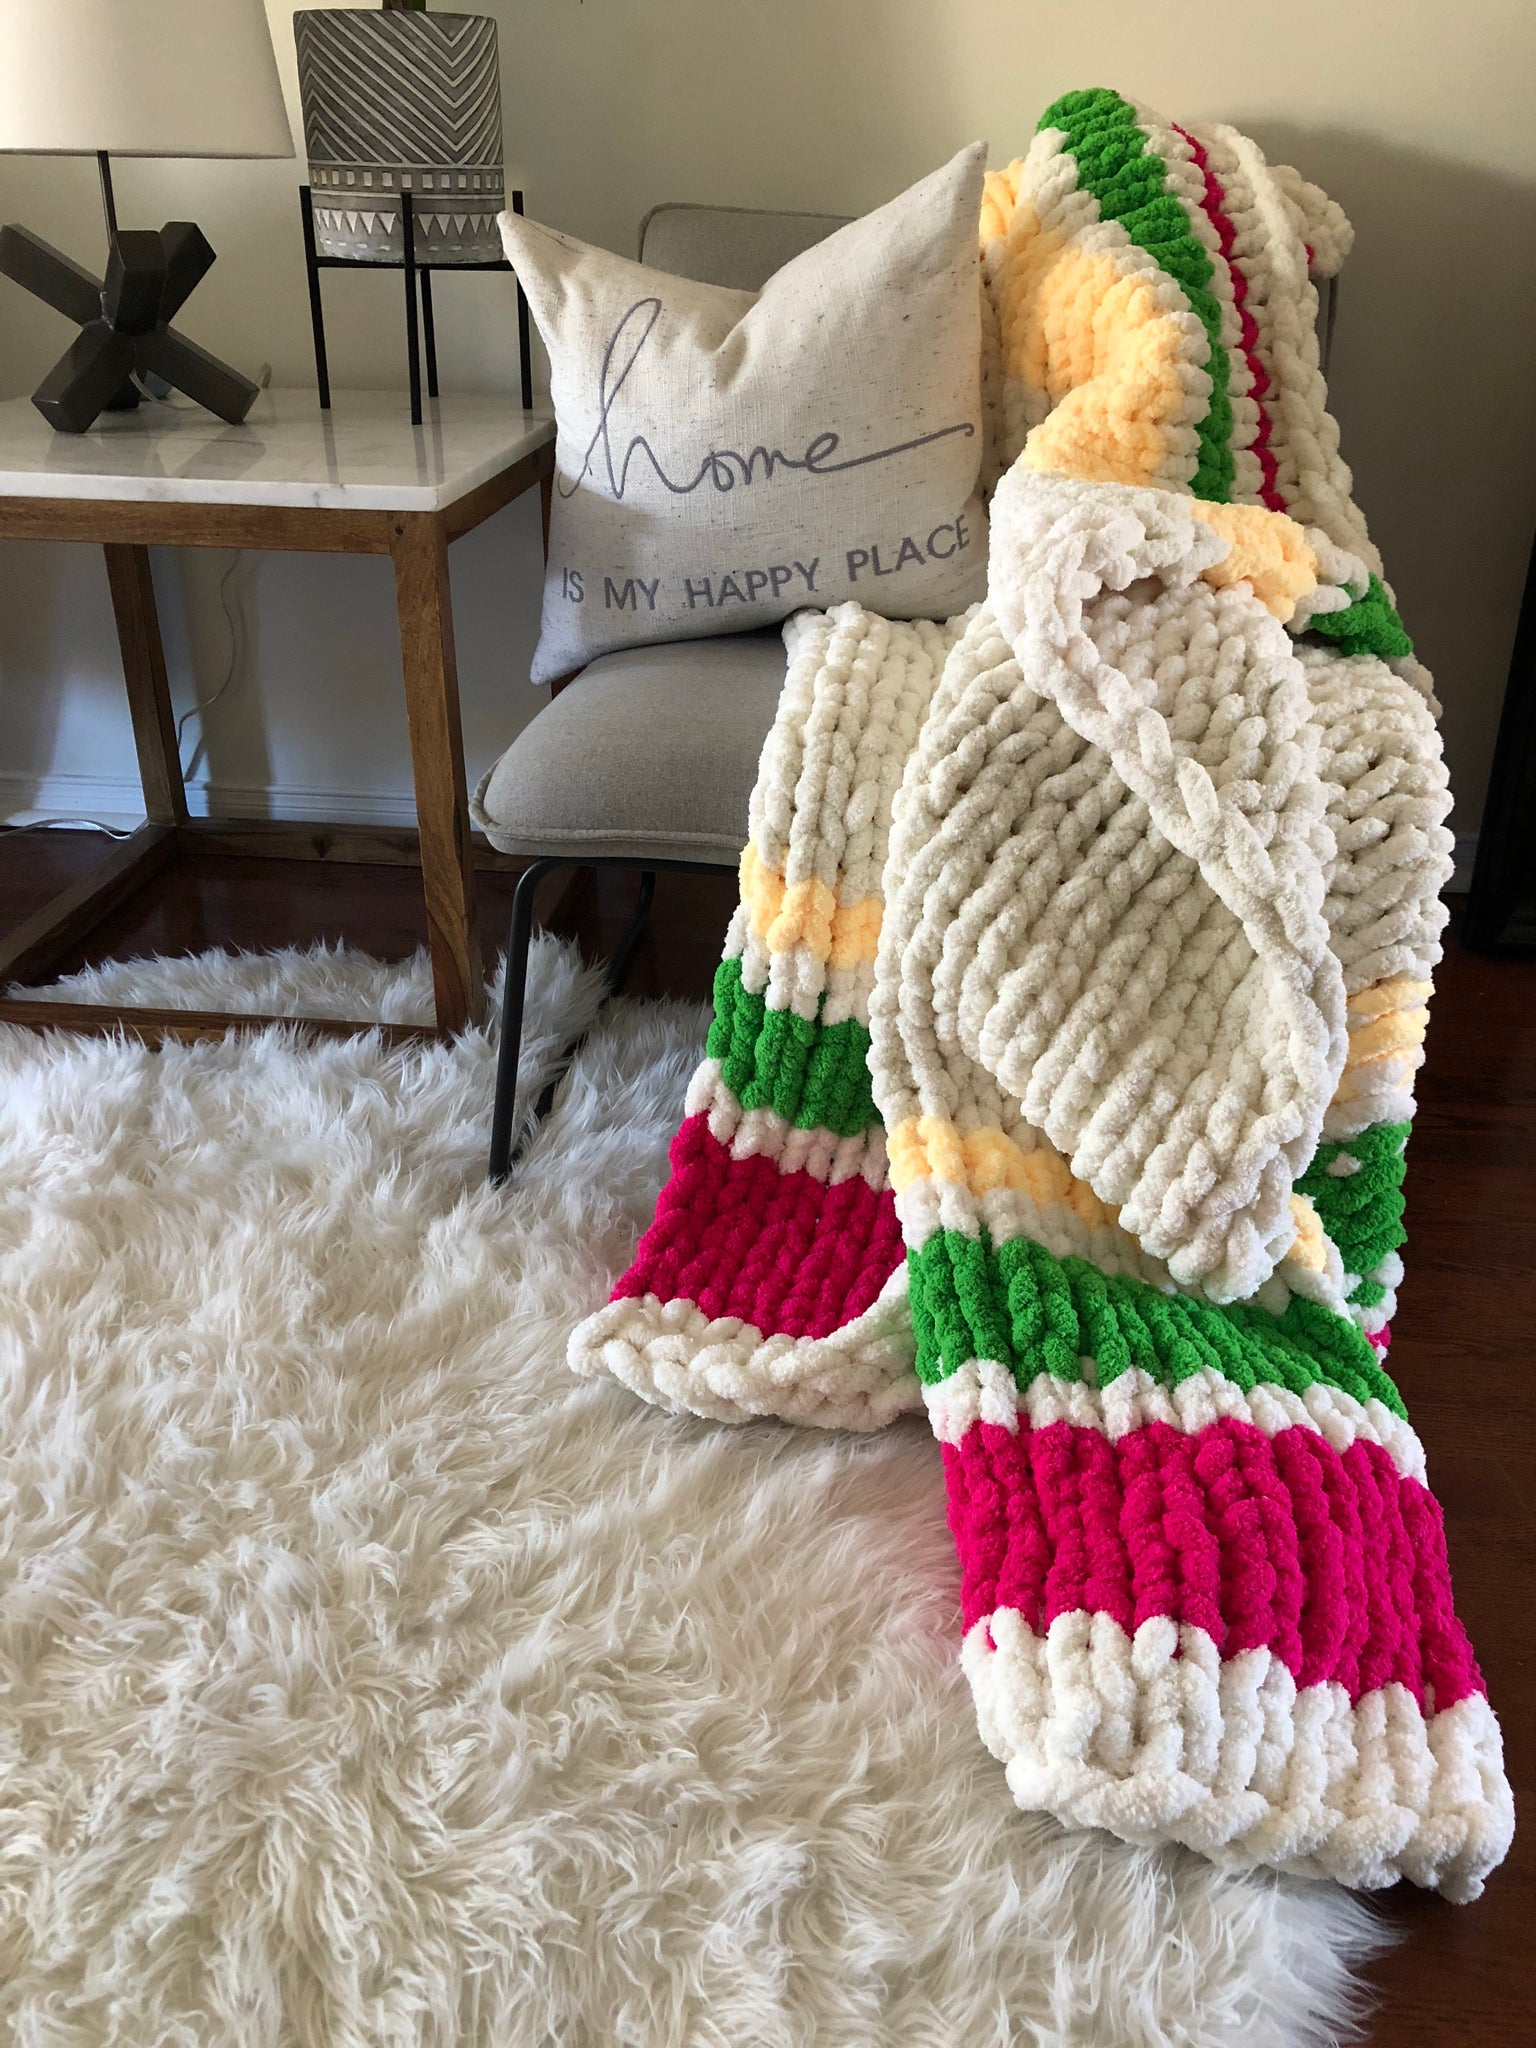 Healing Hand, Chunky Knit Blankets Not Hudson's Bay